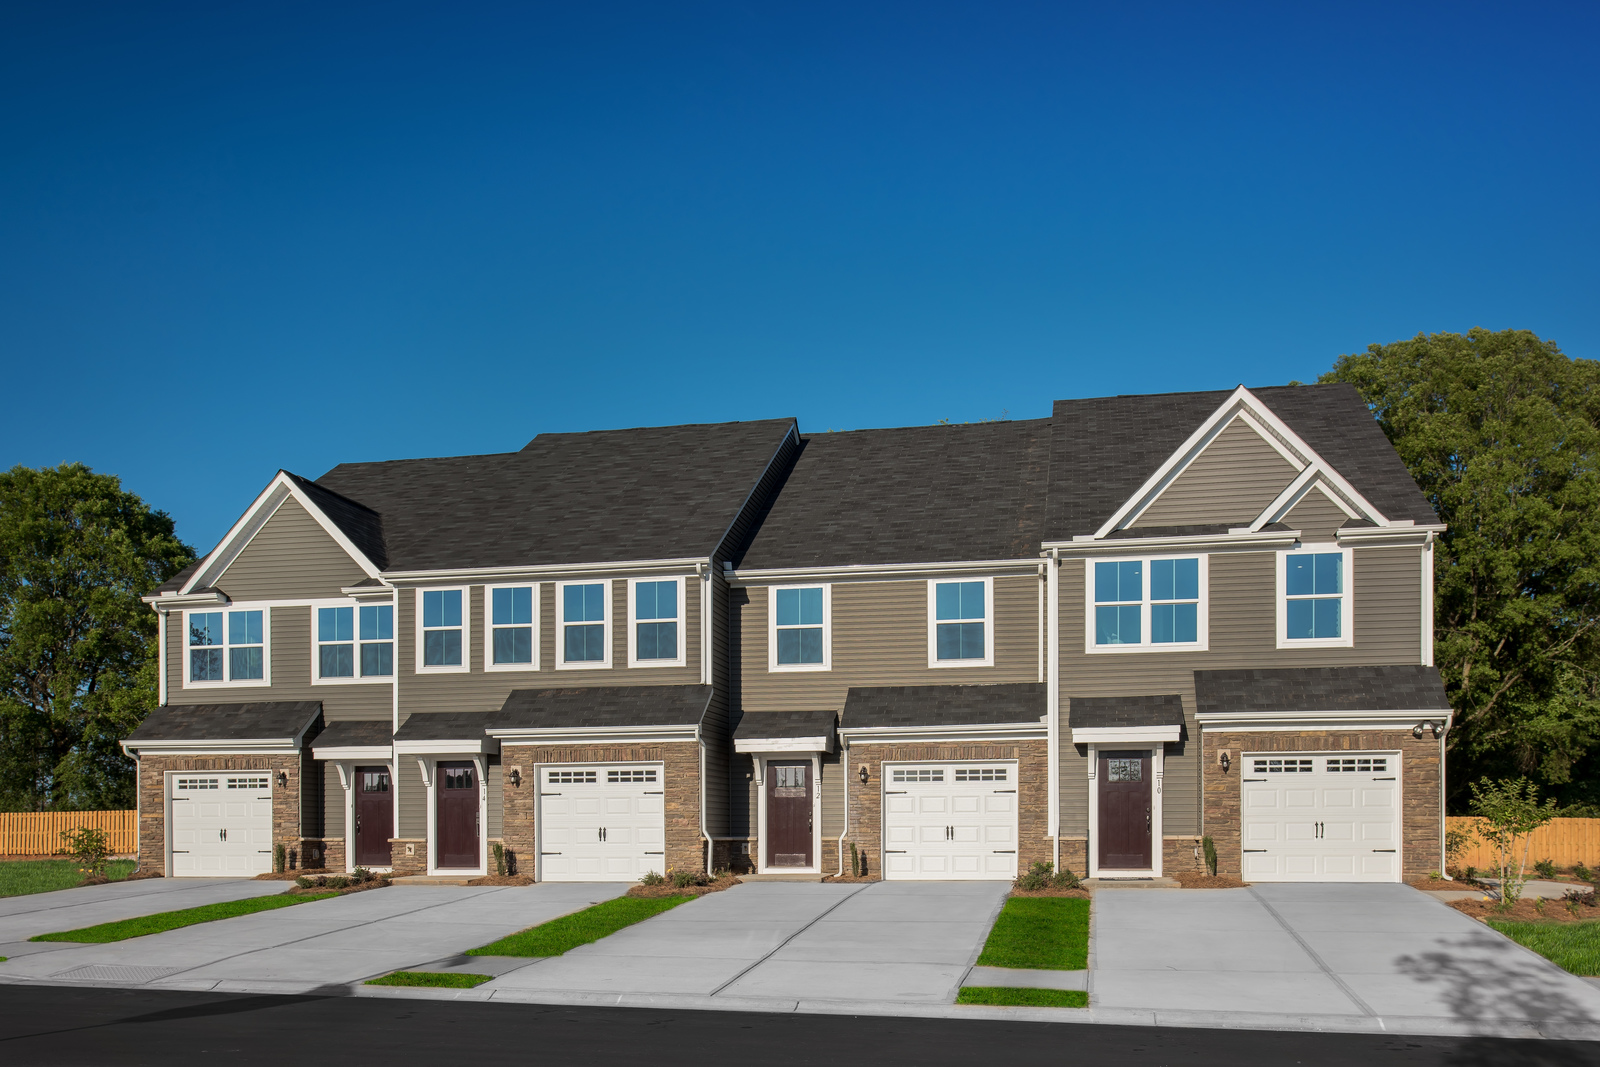 New Homes for sale at Heritage Townes in Simpsonville, SC within the